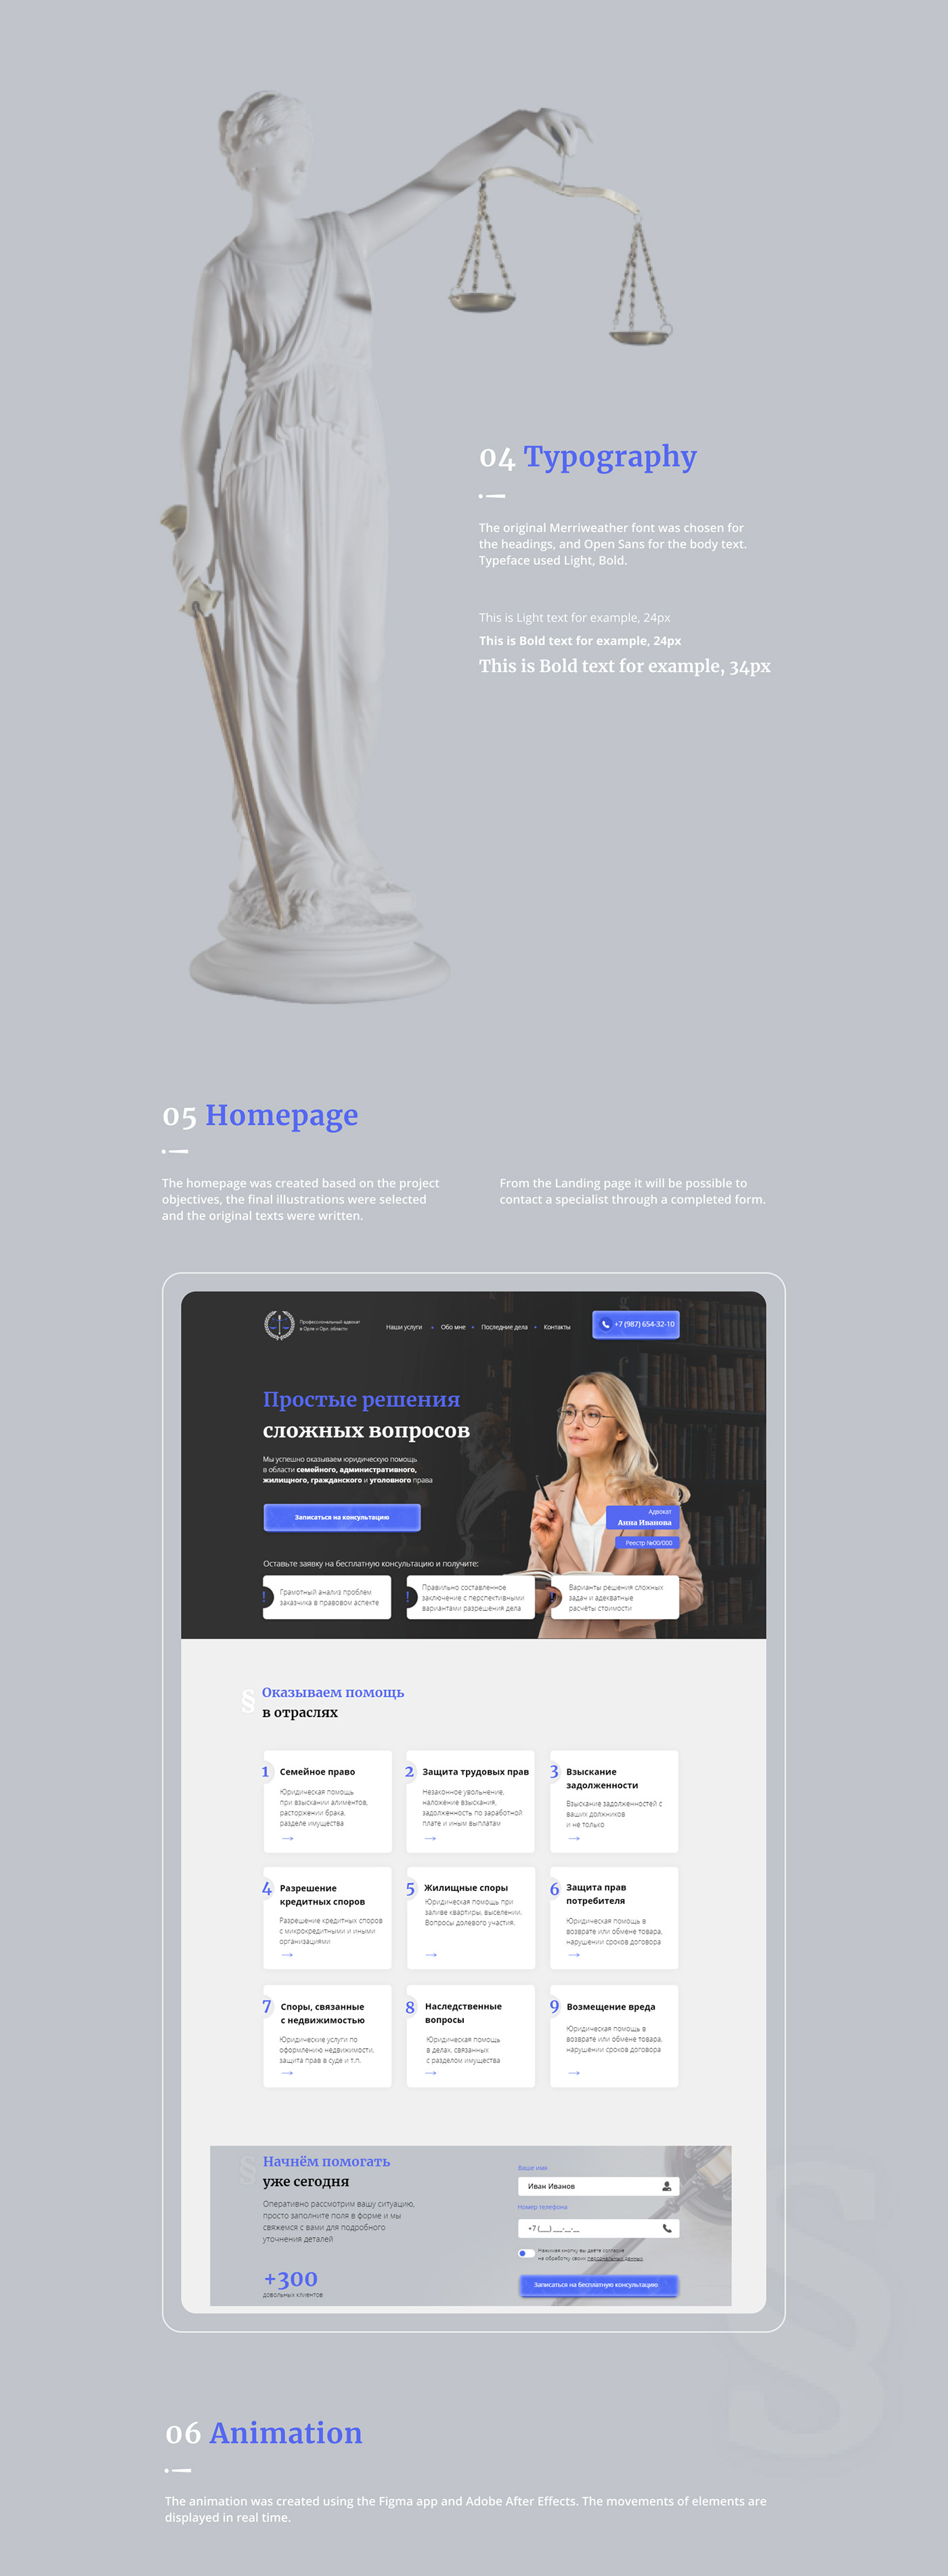 animation  landing page lawyer presentation services UI ux Website сайт Юрист